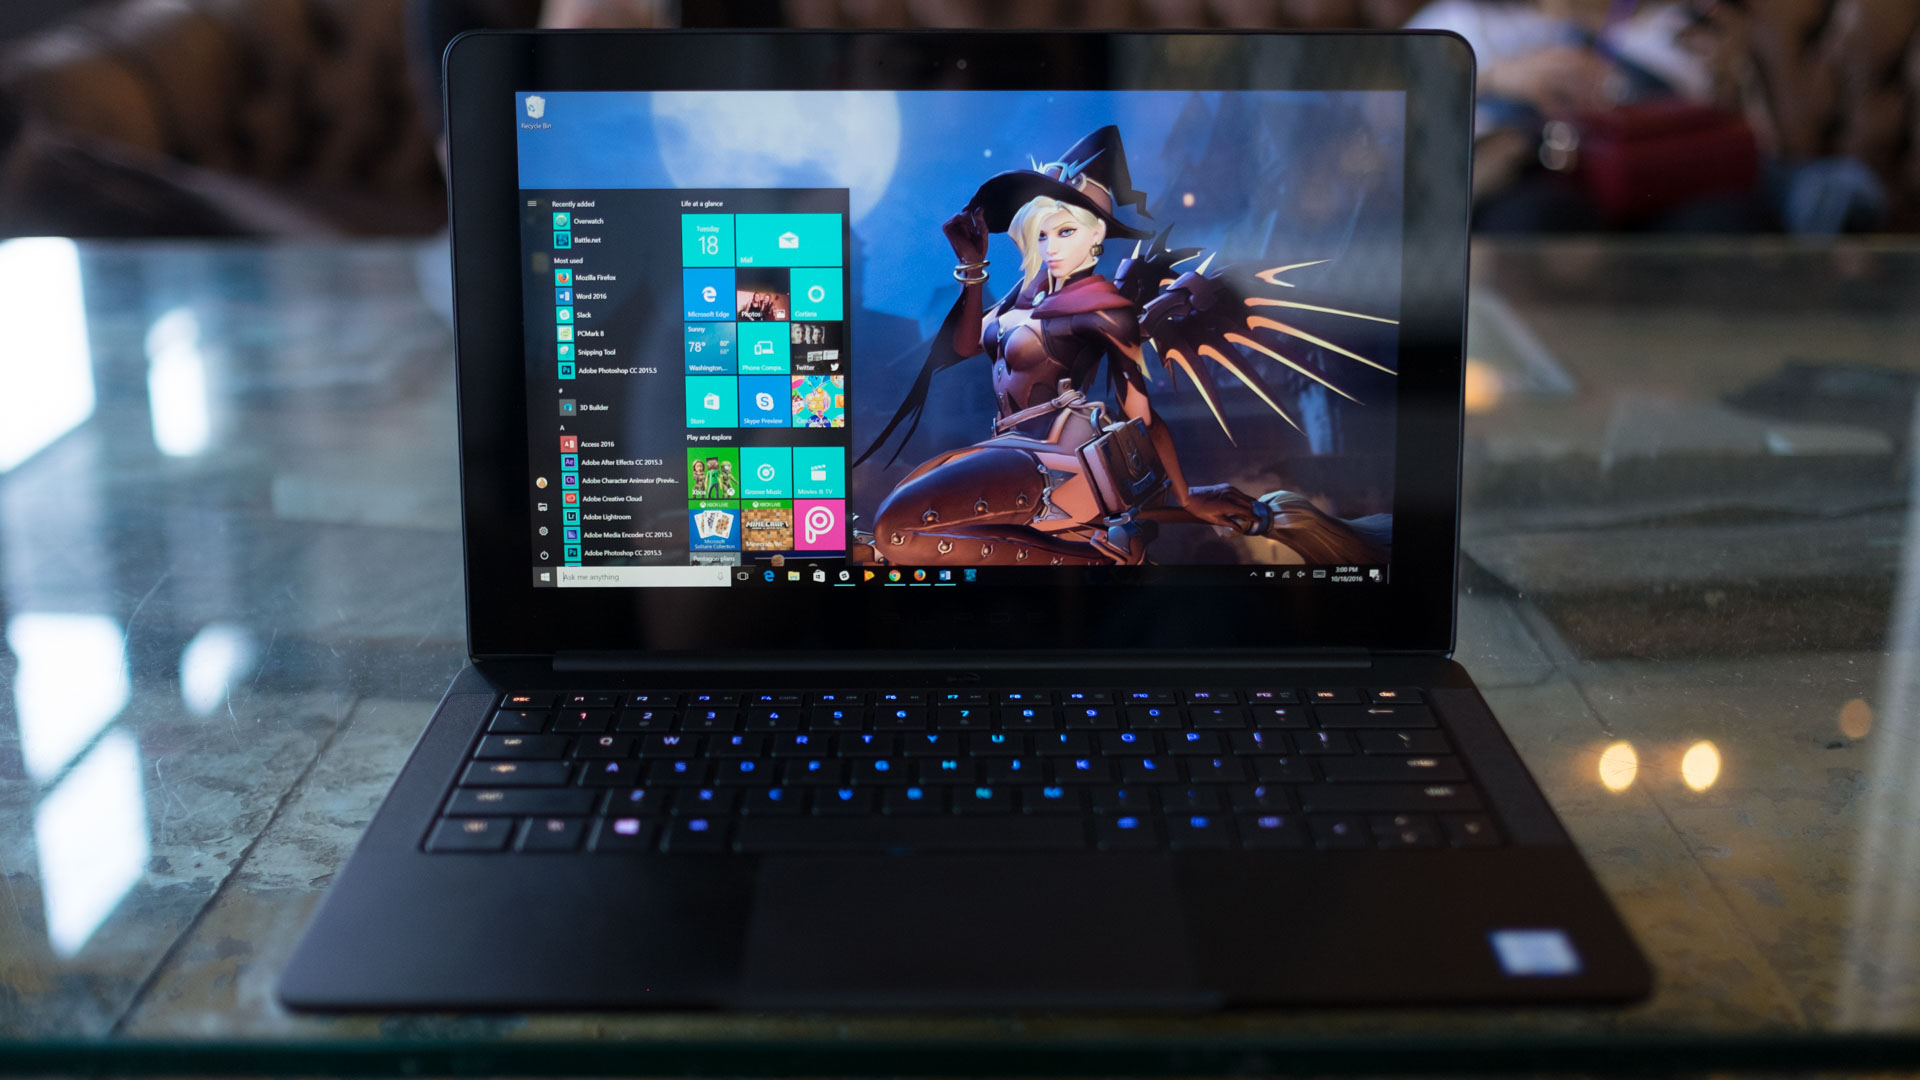 The 5 Best Ultrabooks Of 2018 Top Thin And Light Laptops